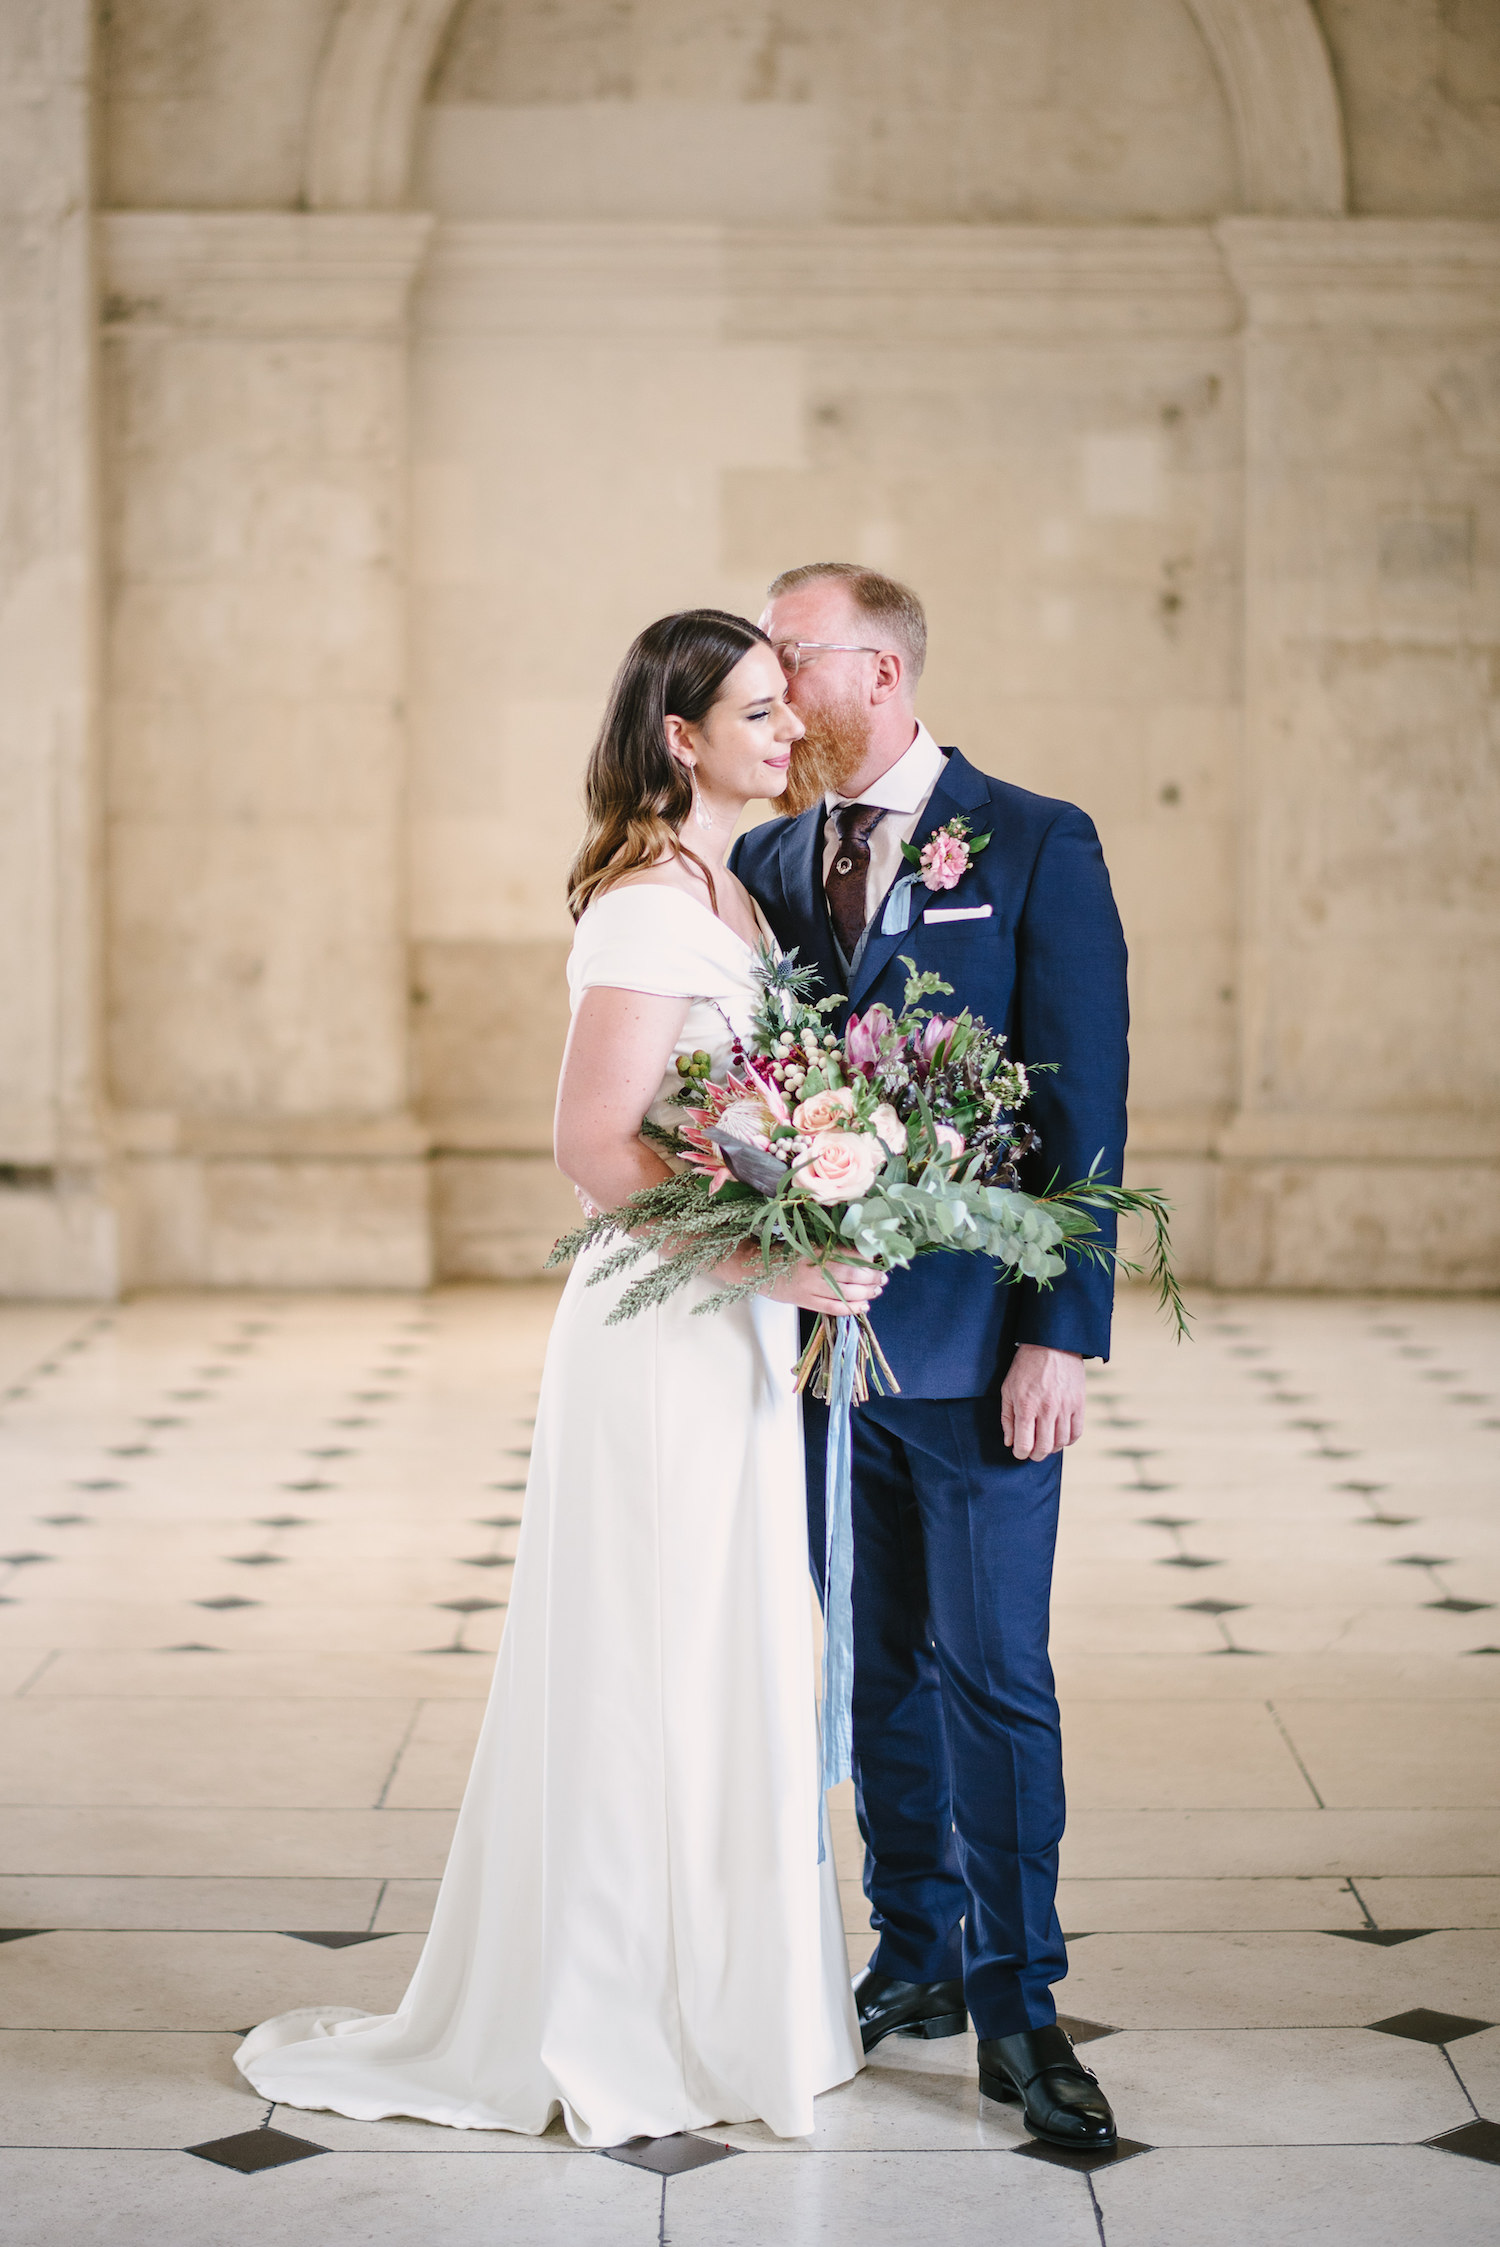 Beautiful bride Megan wore a wedding dress by Halfpenny London